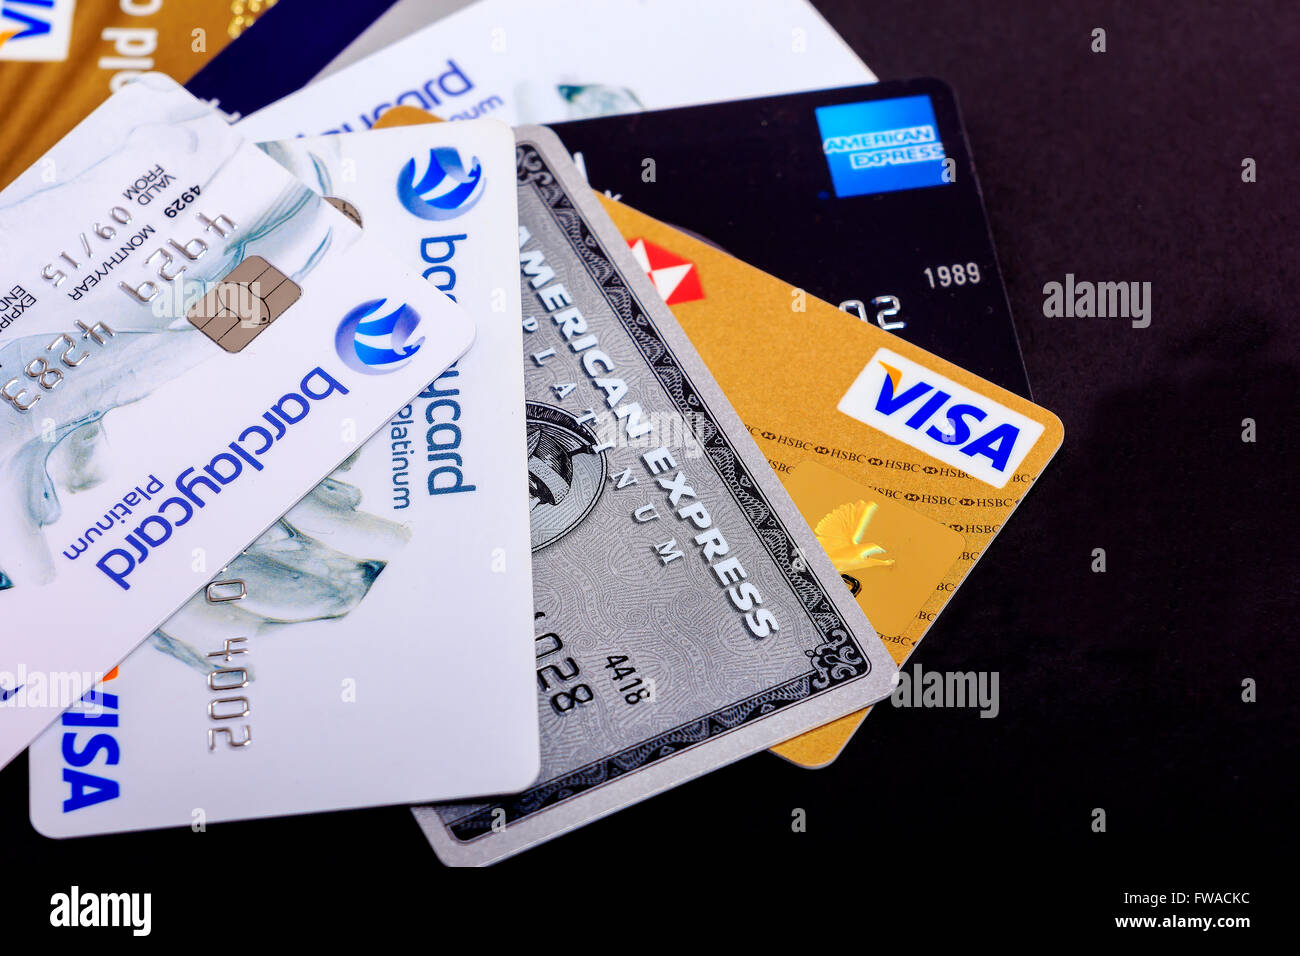 Selection of credit and charge cards spread on black background. - Stock Image